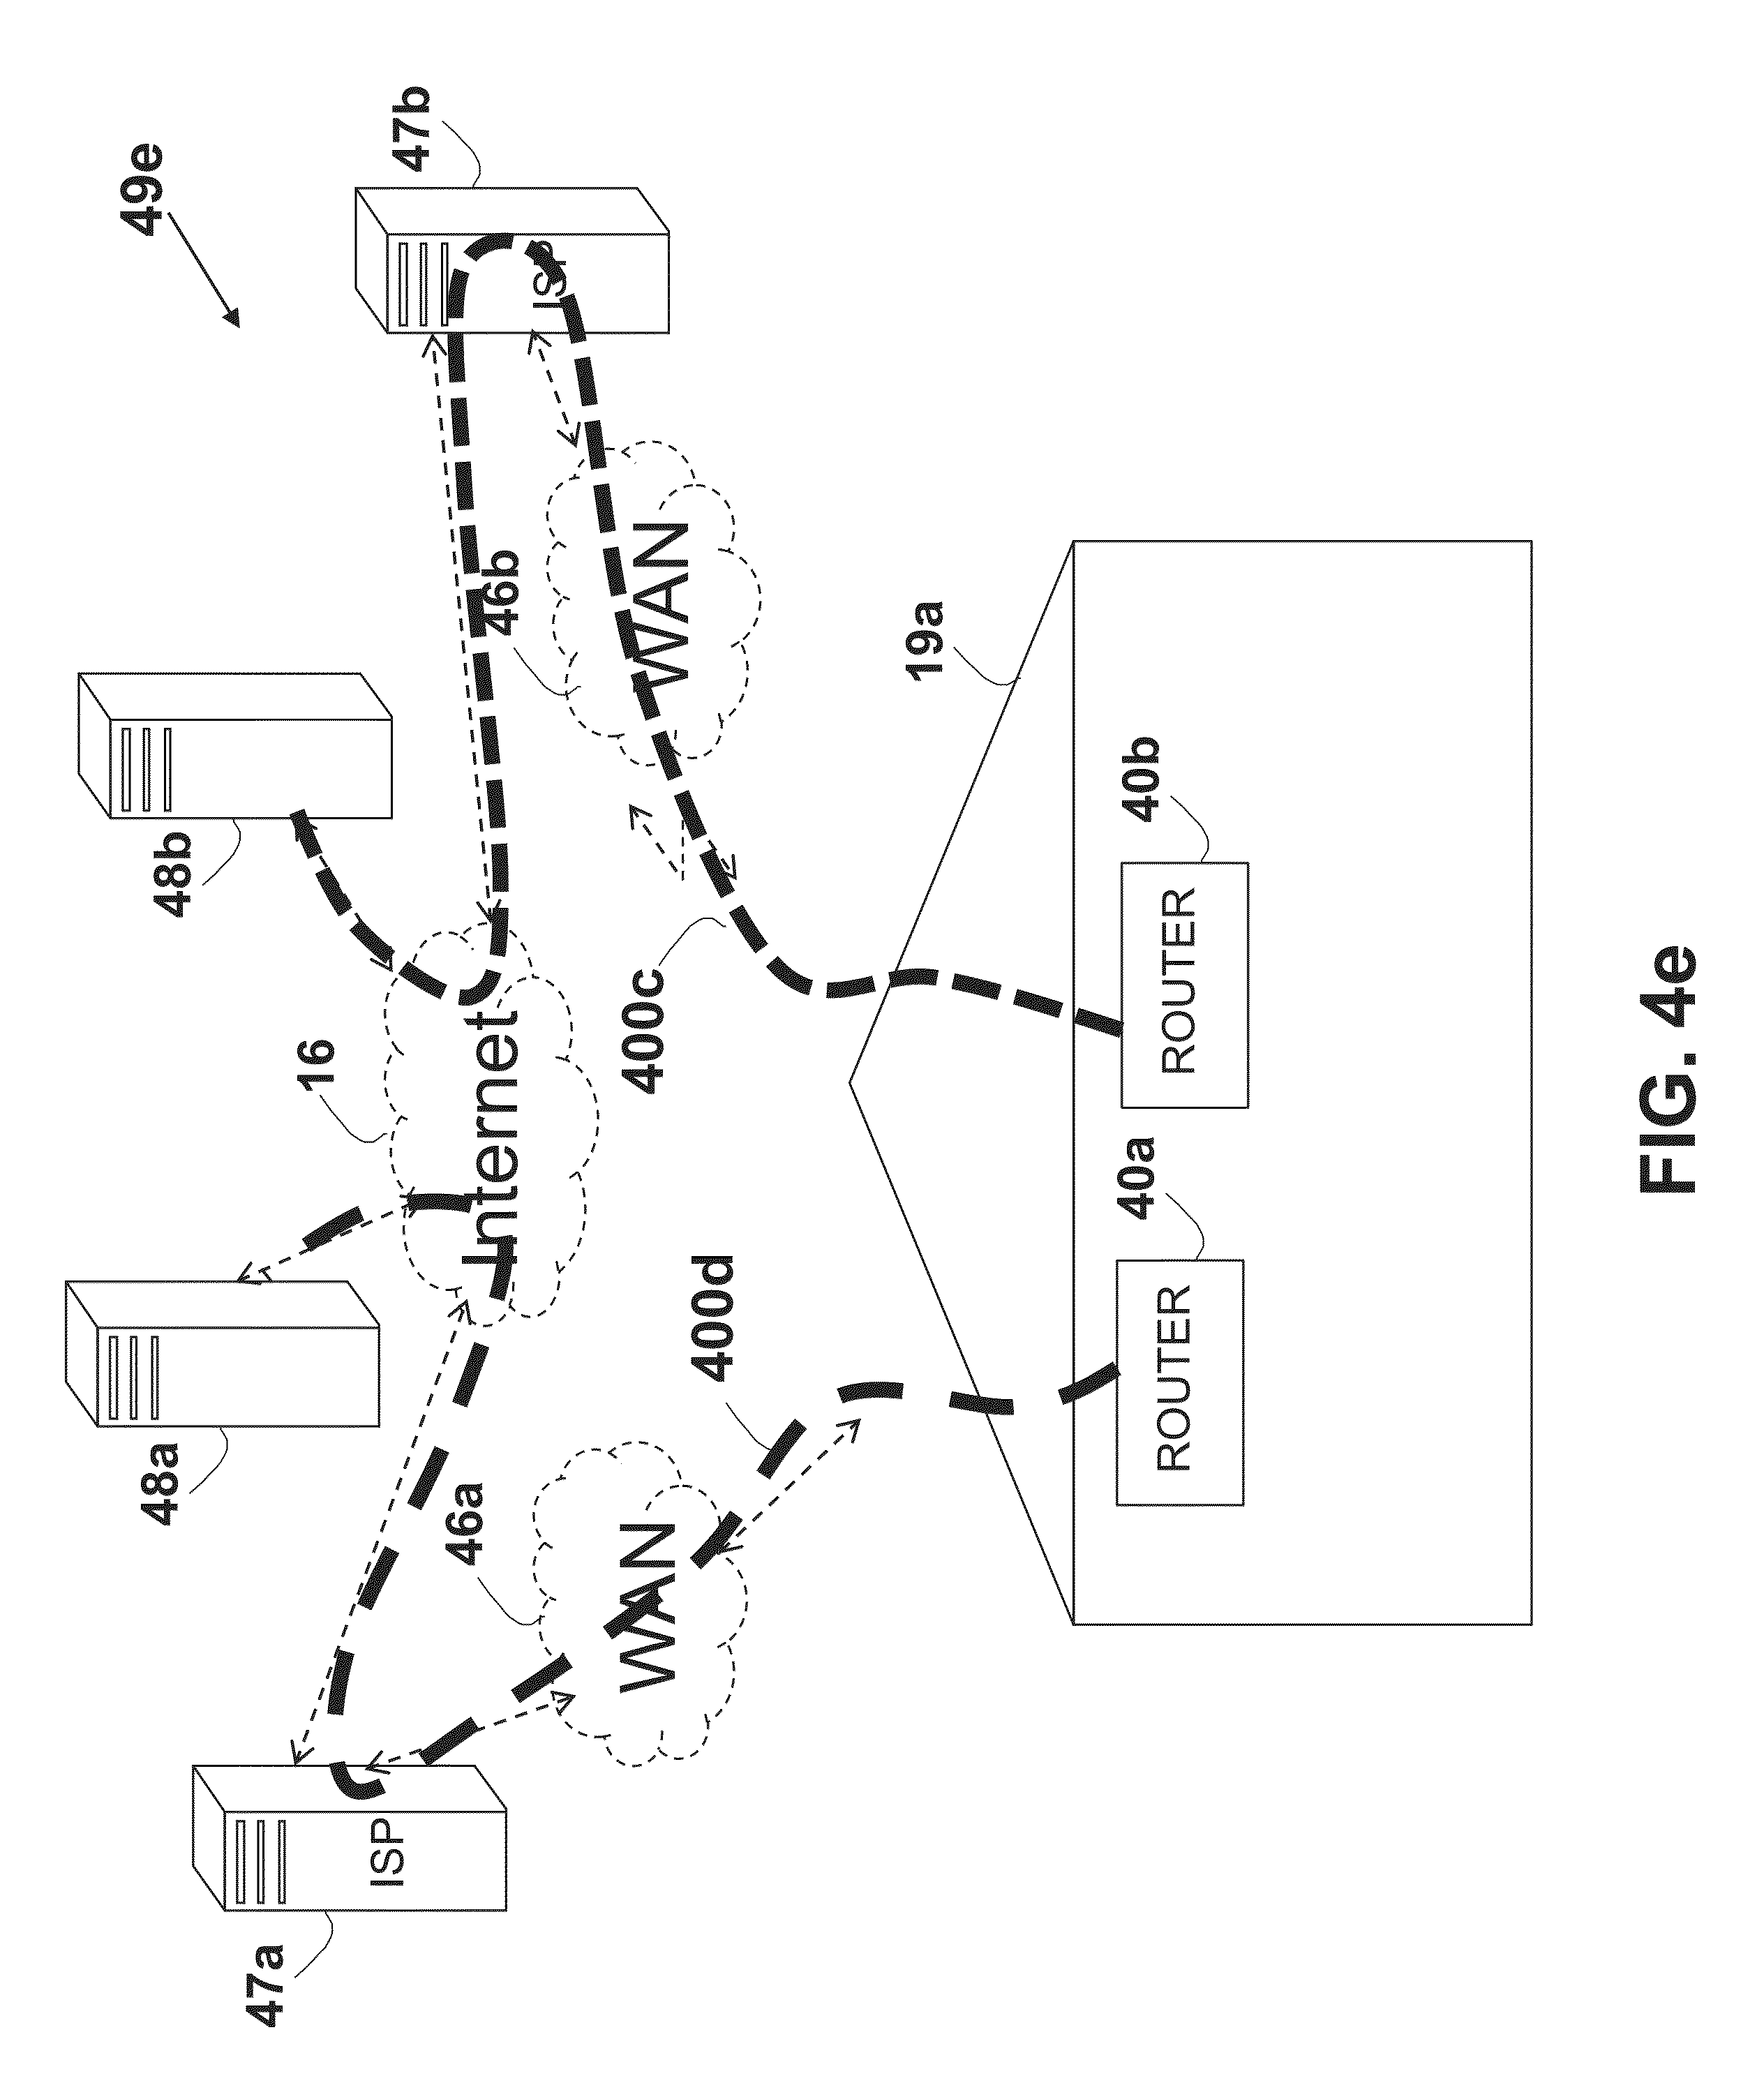 Patent Us20130201316 System And Method For Server Based Control Philips 2n2222 Npn Switching Transistors Datasheet Circuit Times Drawing